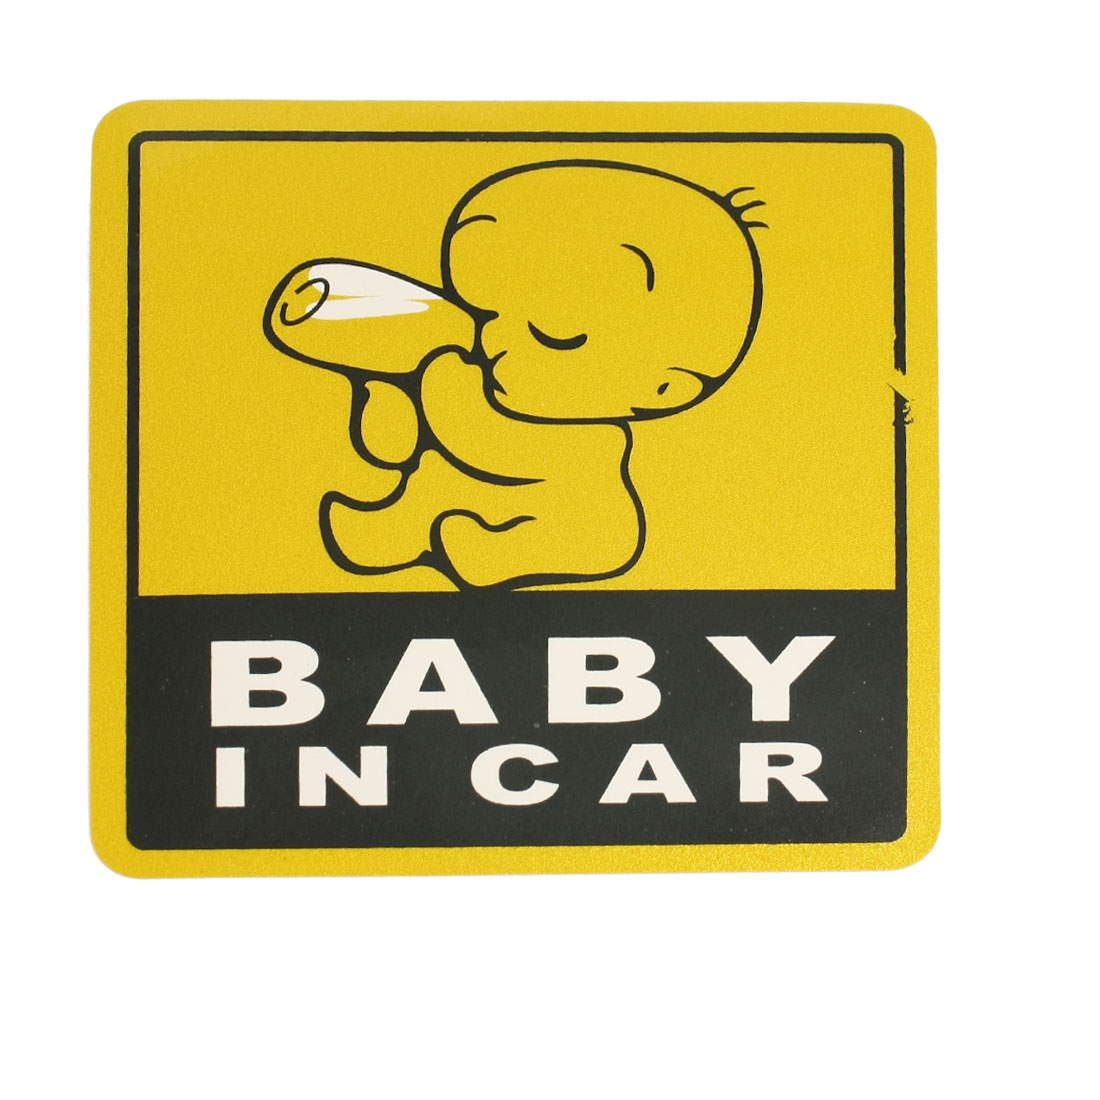 Baby In Car Printed Gold Tone Black Decal Bumper 2D Sticker for Auto